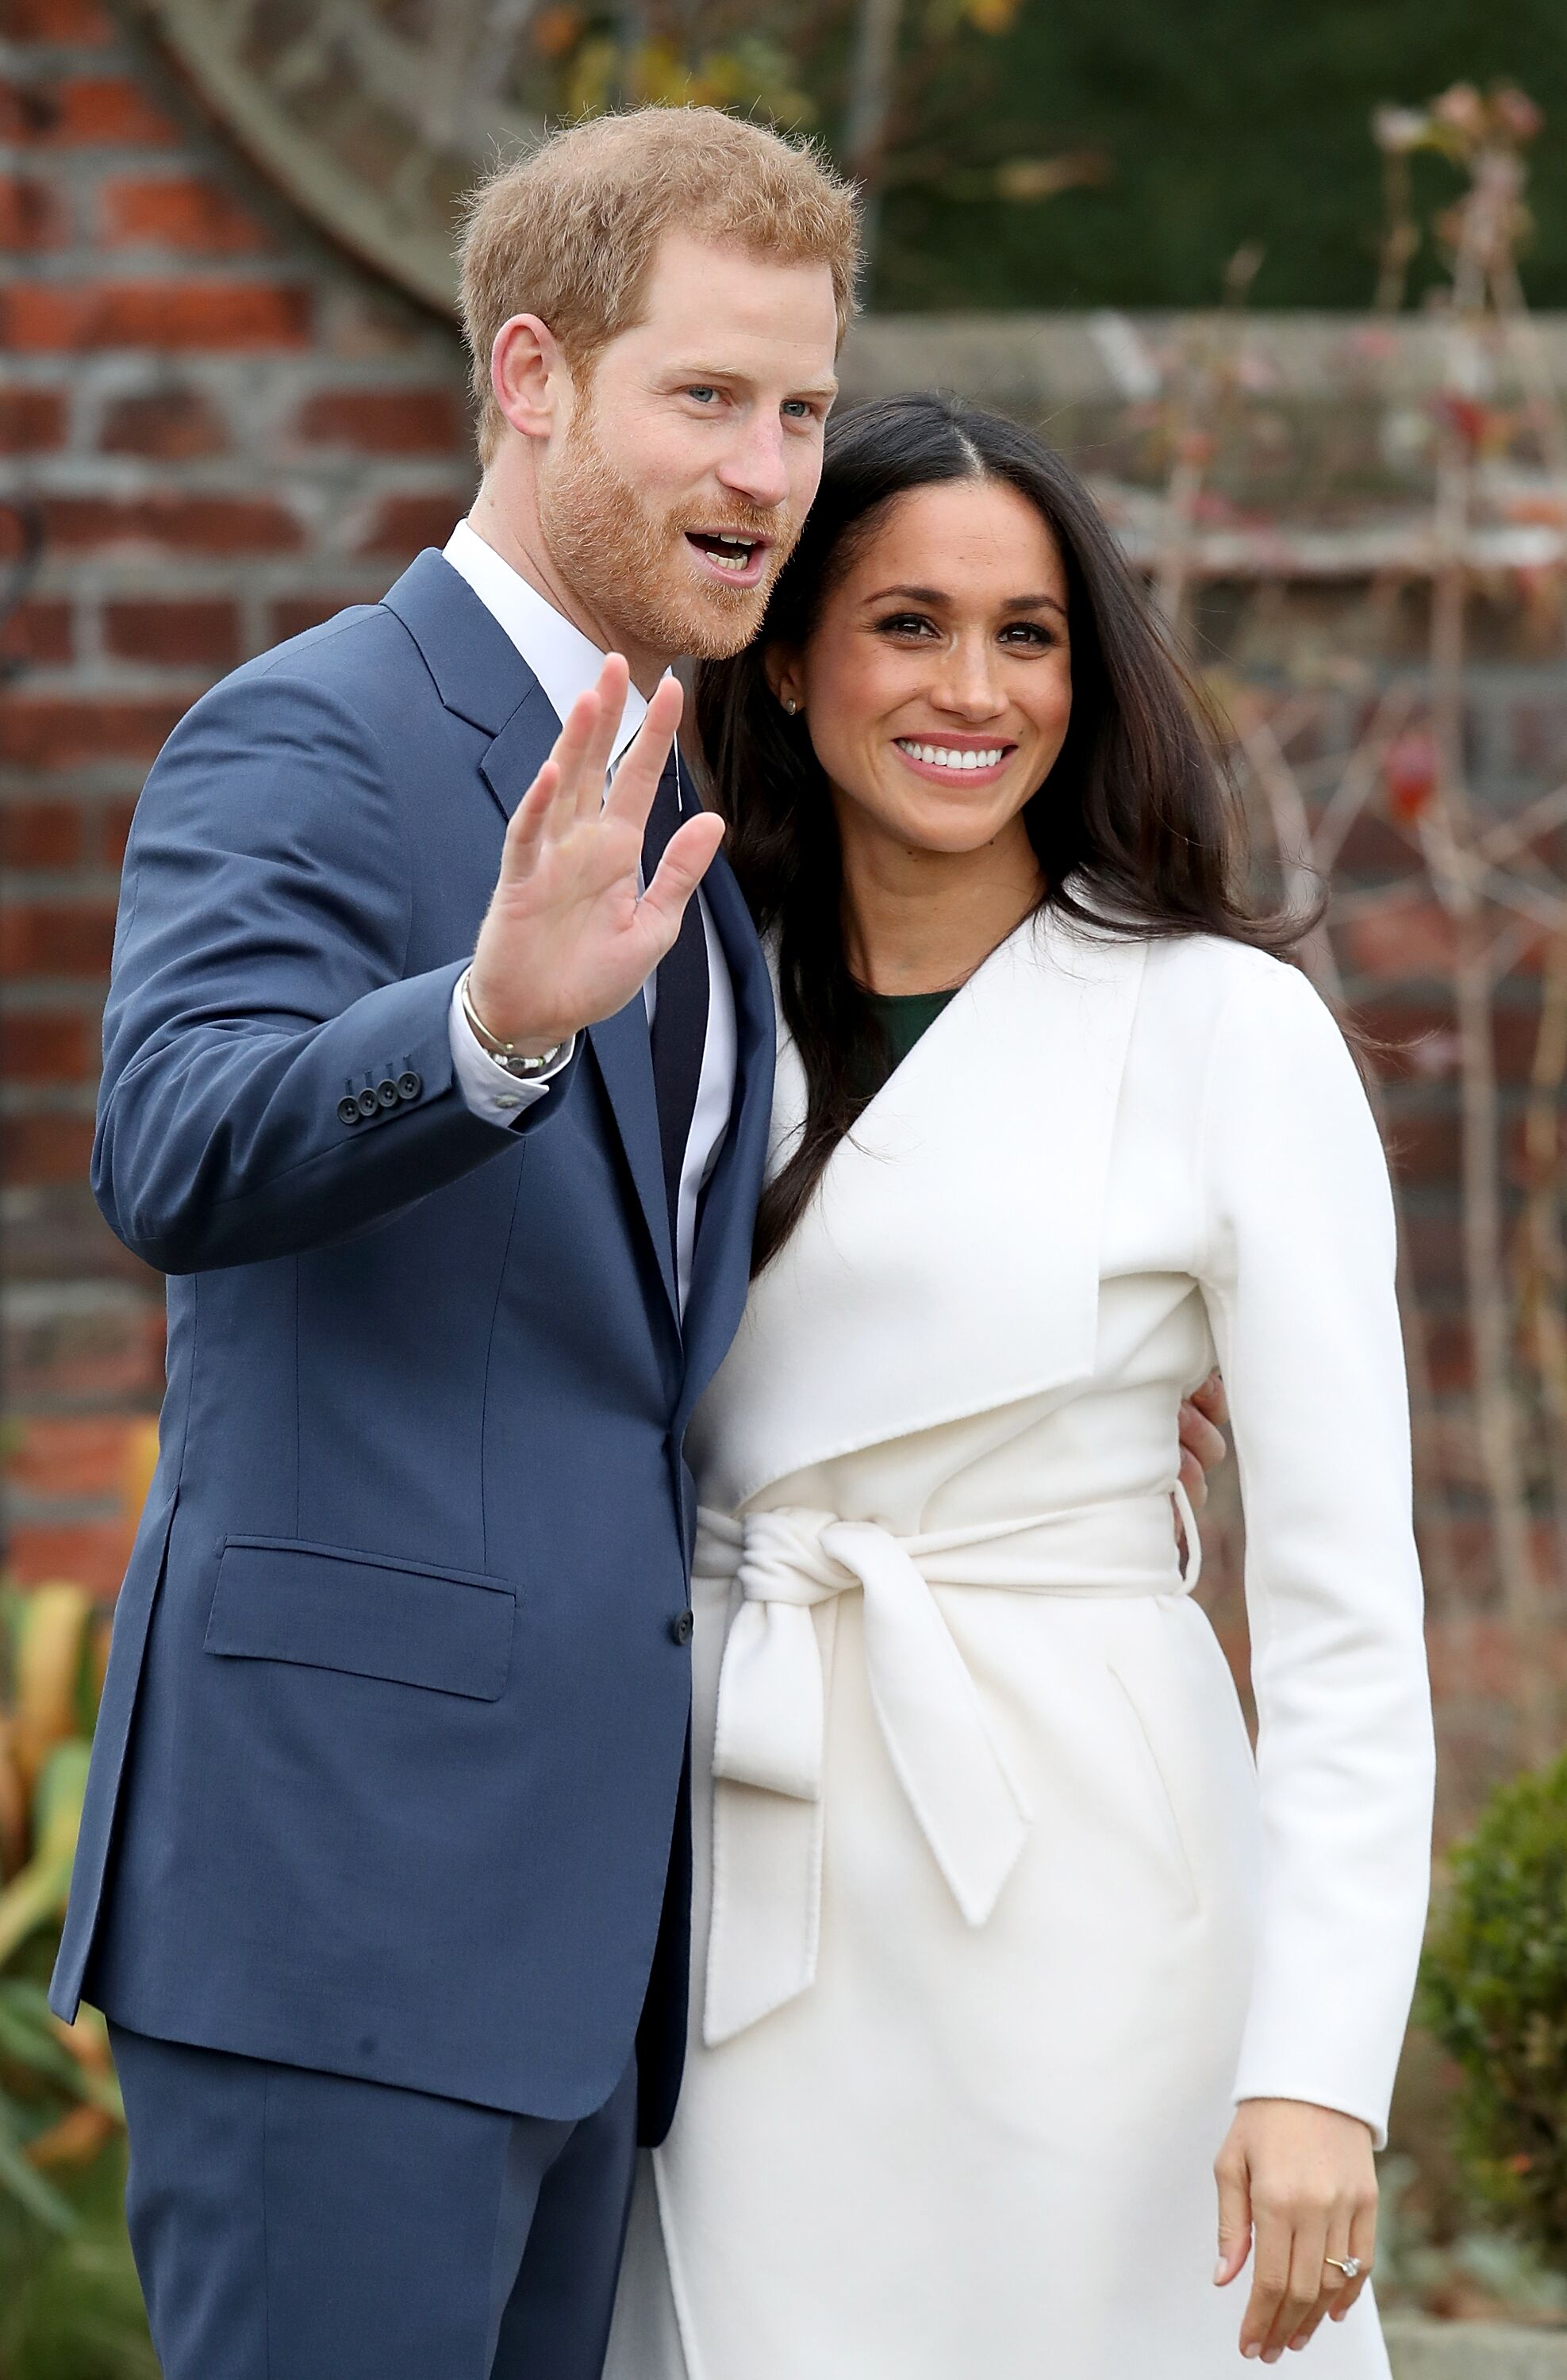 Prince Harry and Duchess Meghan during an official photocall to announce their engagement on November 27, 2017, in London, England   Photo: Chris Jackson/Chris Jackson/Getty Images